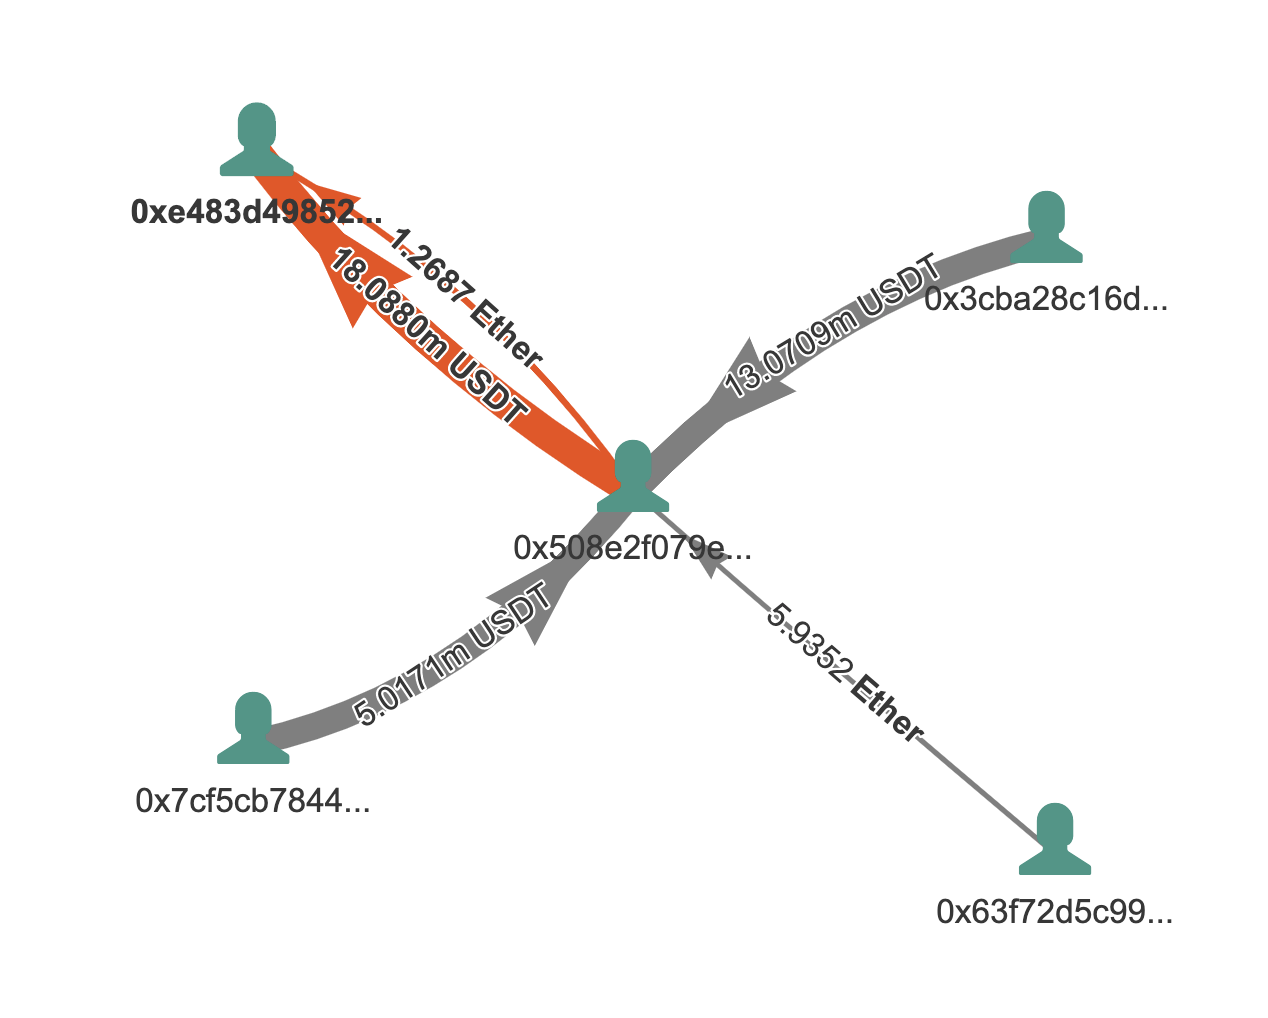 Transaction graph of the $18M swap by Bloxy